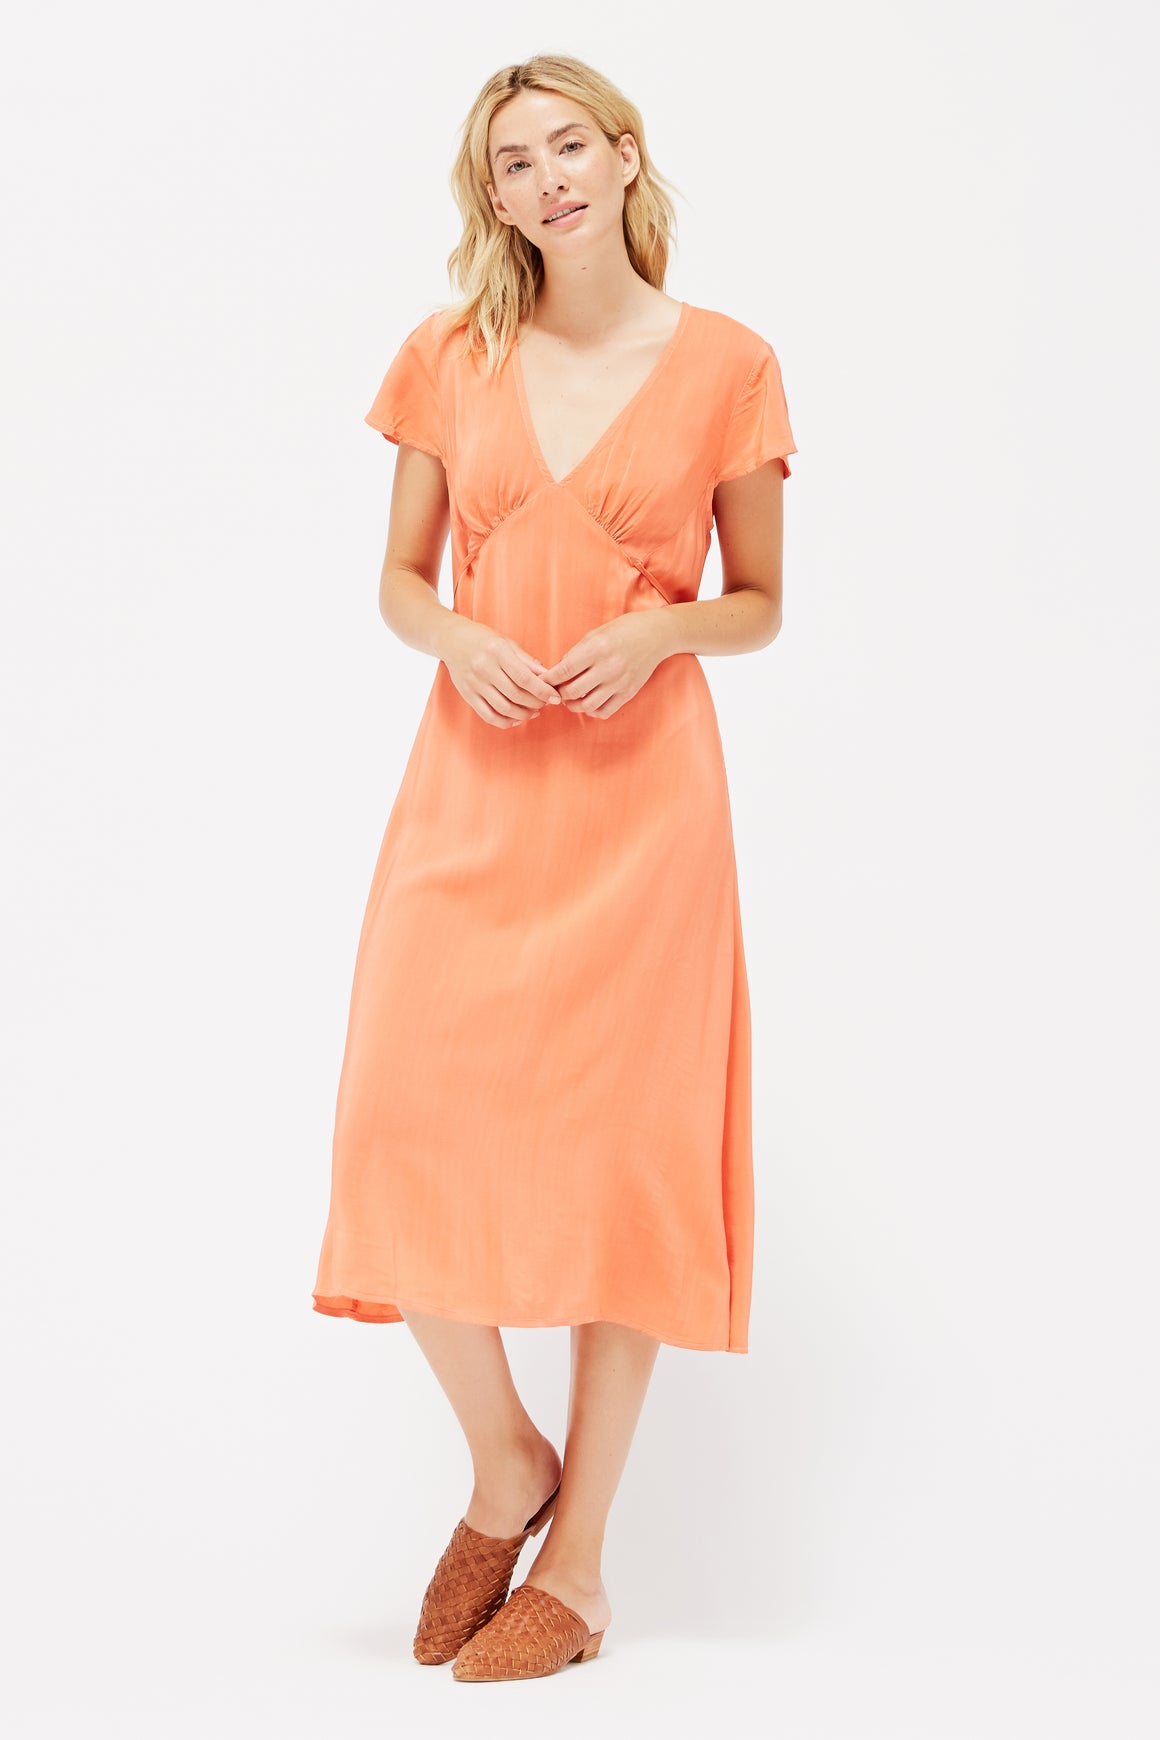 Fairfax Vivien Dress